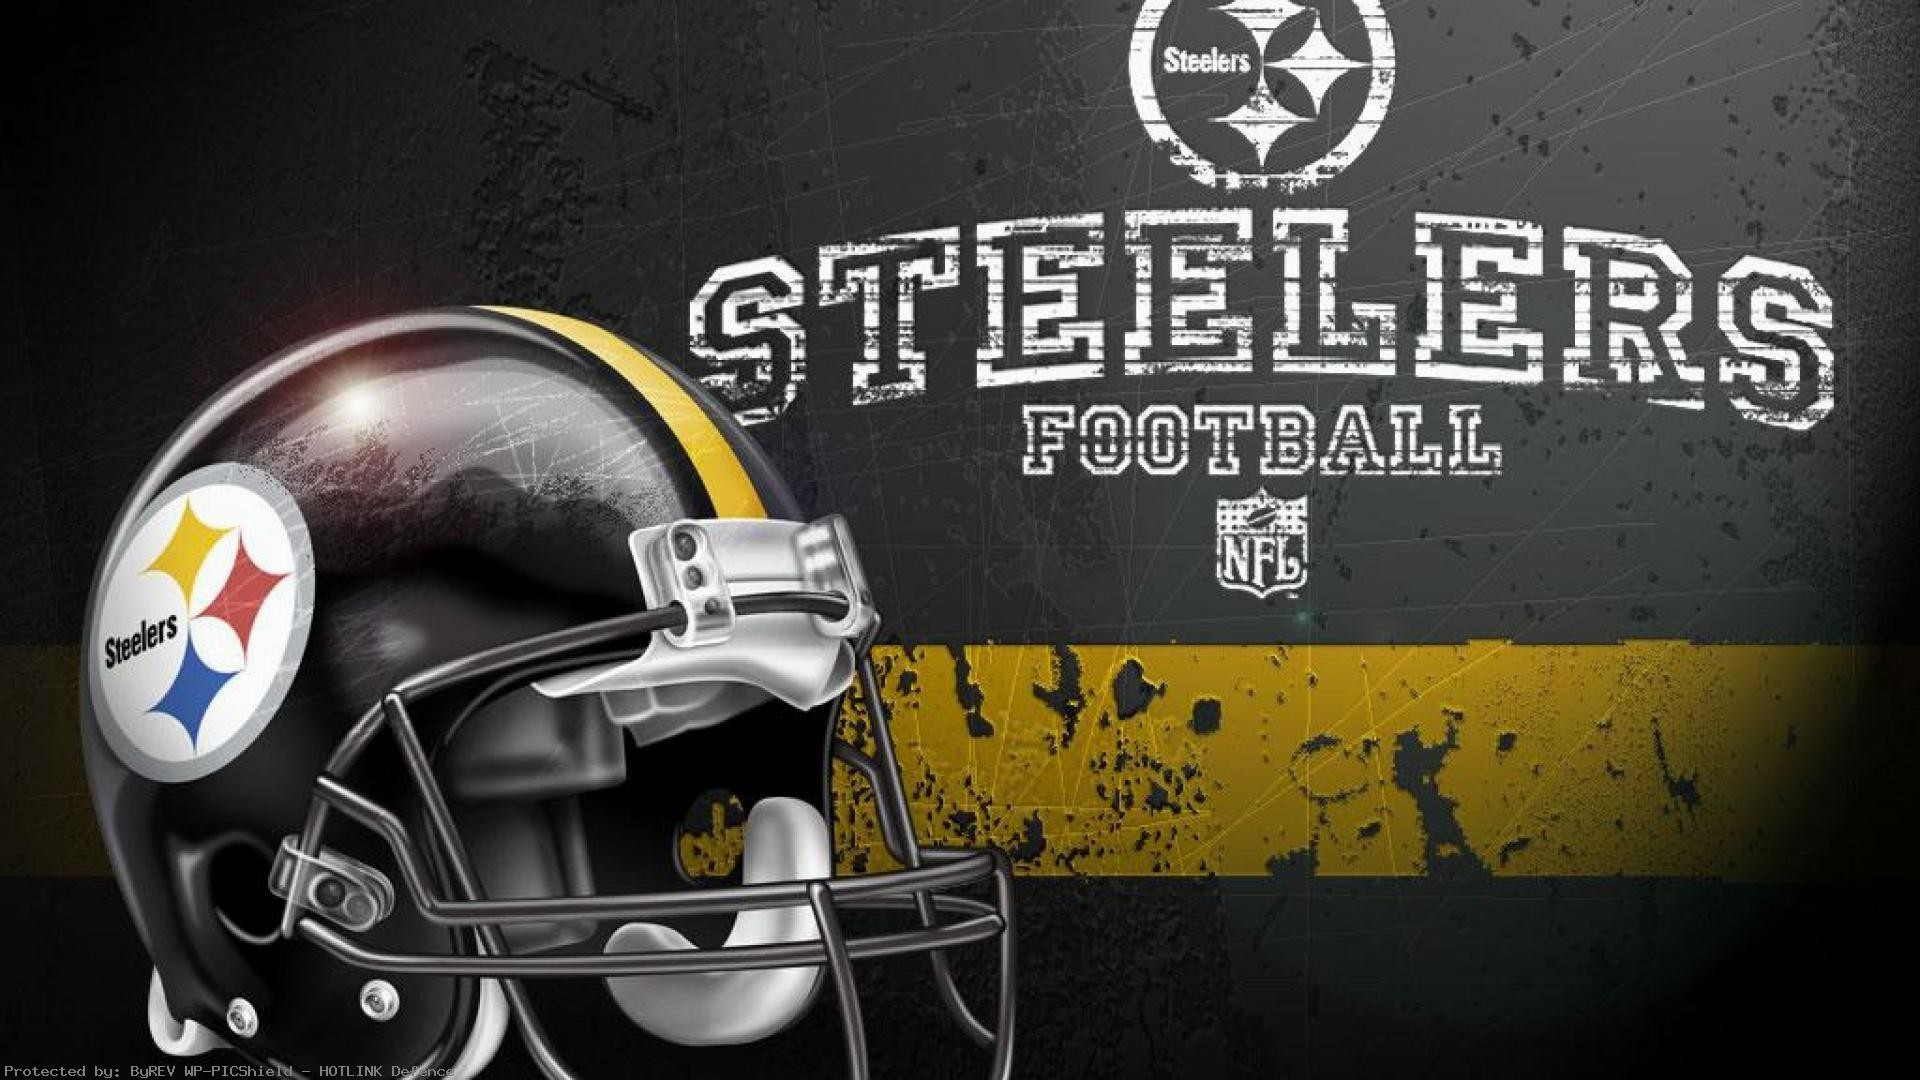 1920-x-1080px-steelers-desktop-backgrounds-by-Caldwell-